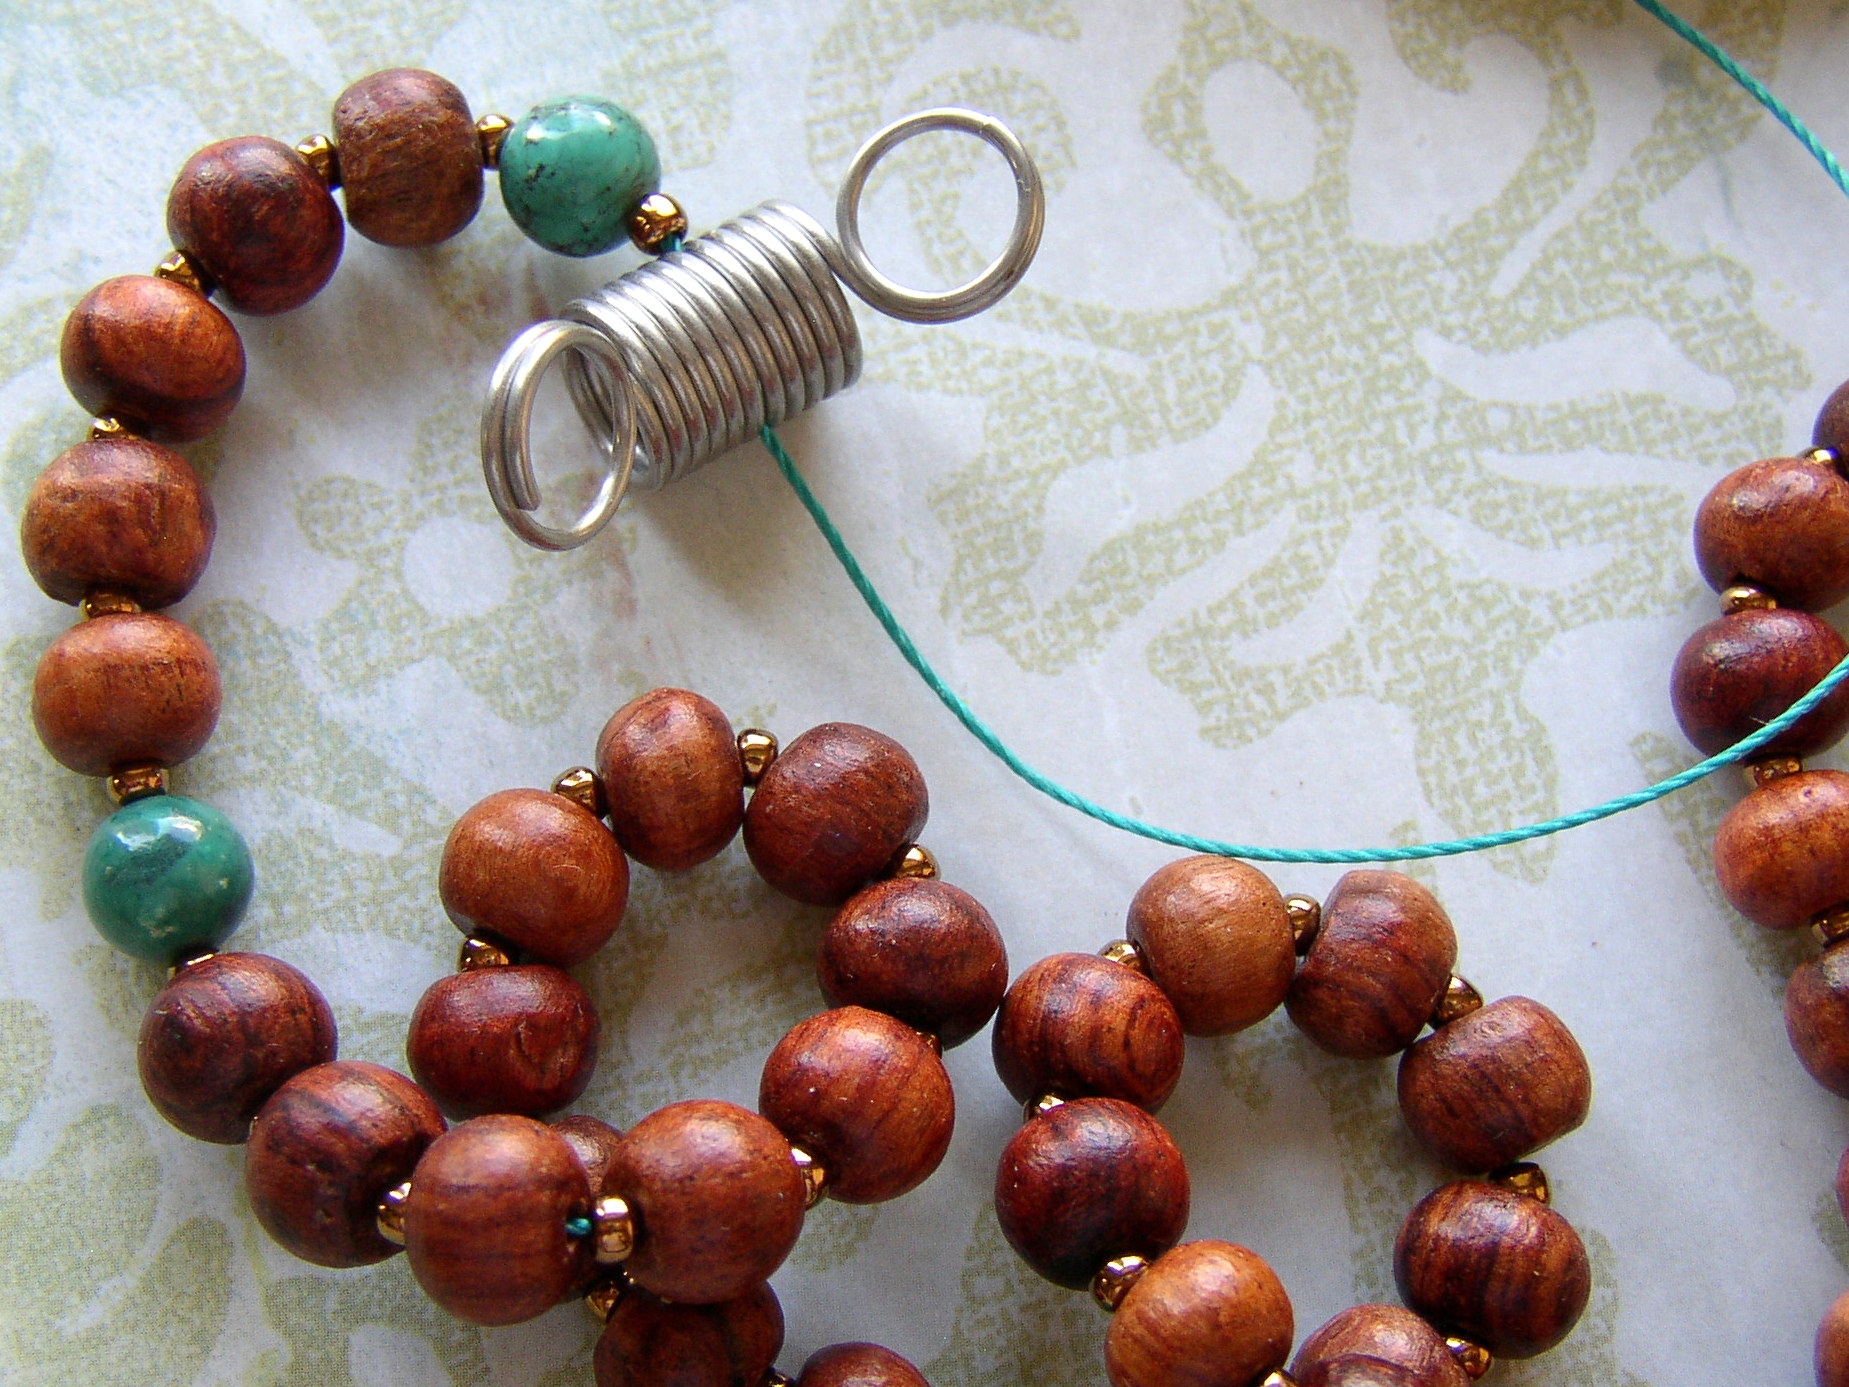 When making a prayer bead Mala, use Bead Stoppers to keep the beads in place.